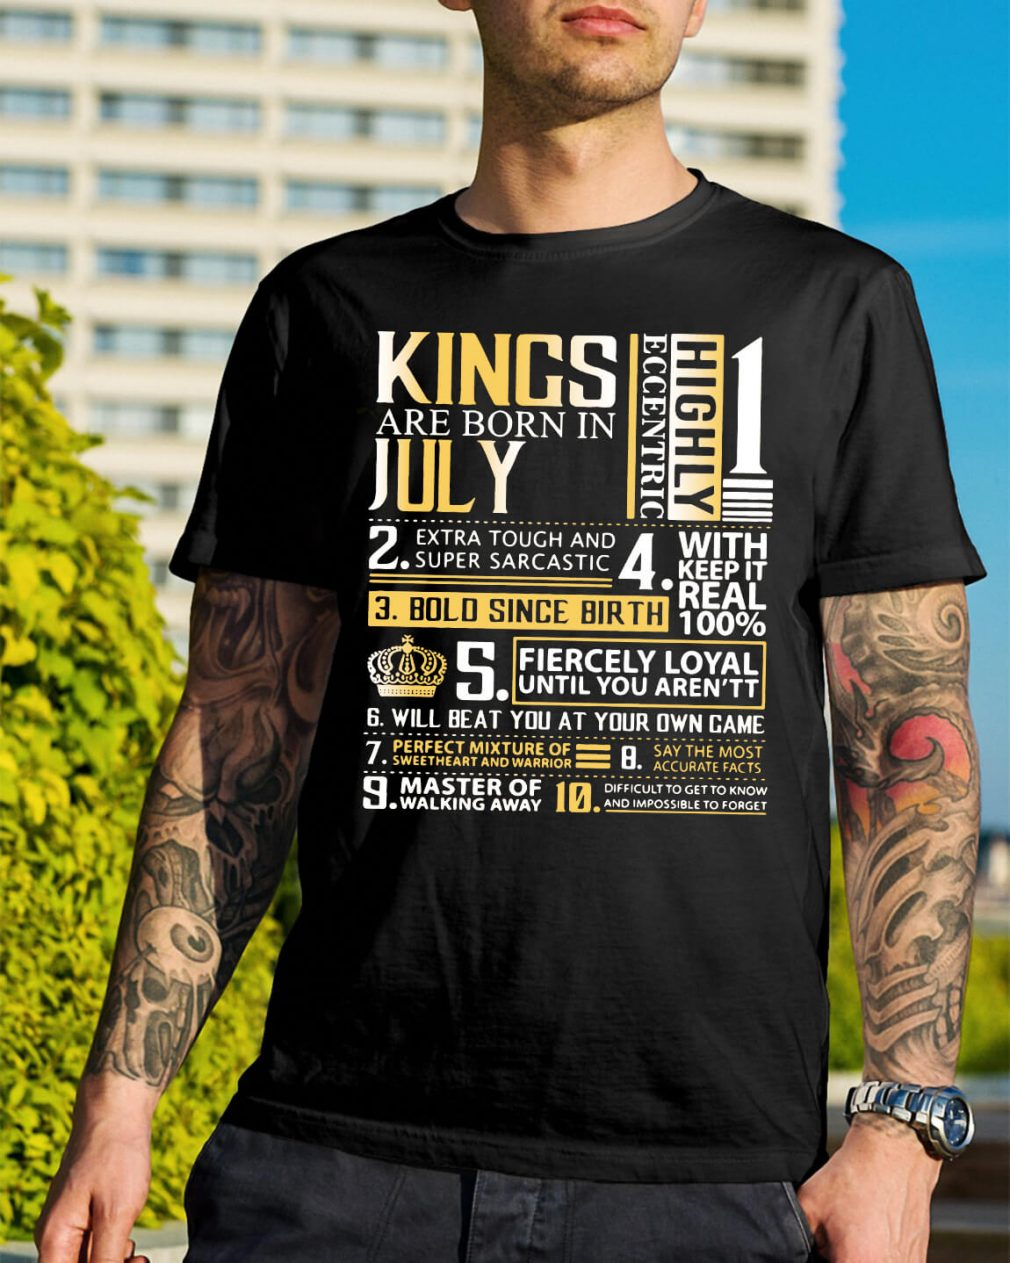 Kings are born in July highly eccentric extra tough and super sarcastic shirt